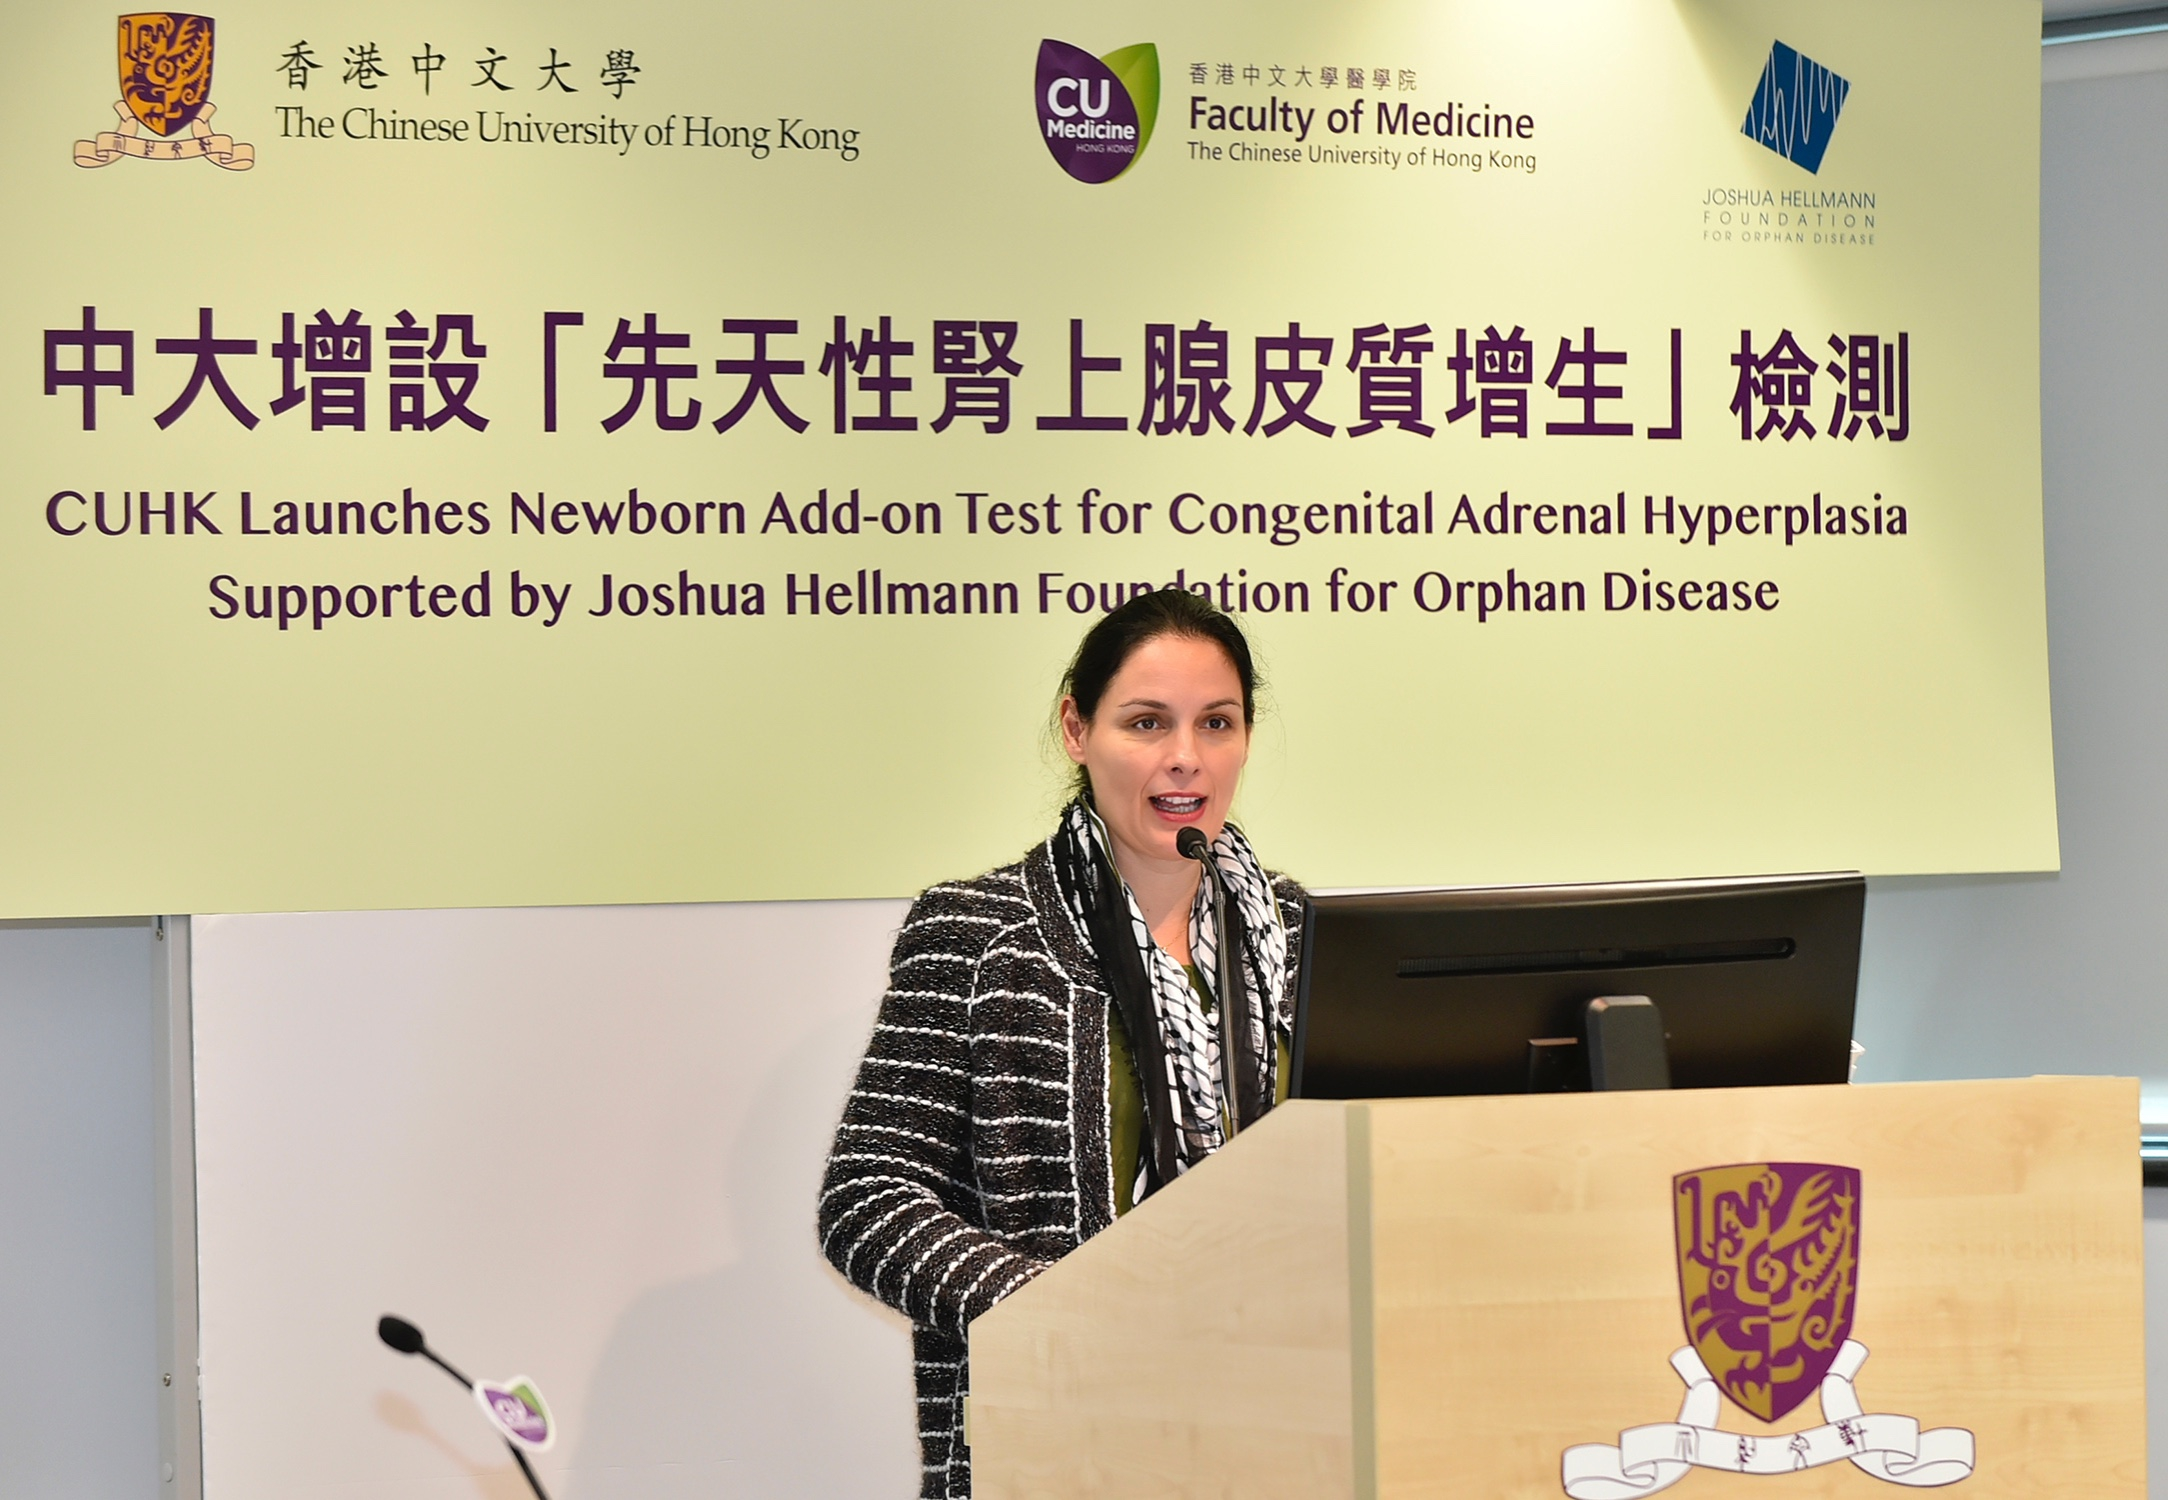 Mrs Christina STRONG, Founder and Chair of the Joshua Hellmann Foundation (JHF) for Orphan Disease, shares the results of the territory's first newborn metabolic screening programme run by CUHK Medicine since July 2013.  The programme can test 35 kinds of Inborn Errors of Metabolism (IEM) and more than 20,000 newborn babies have joined the newborn metabolic screening programme till now.